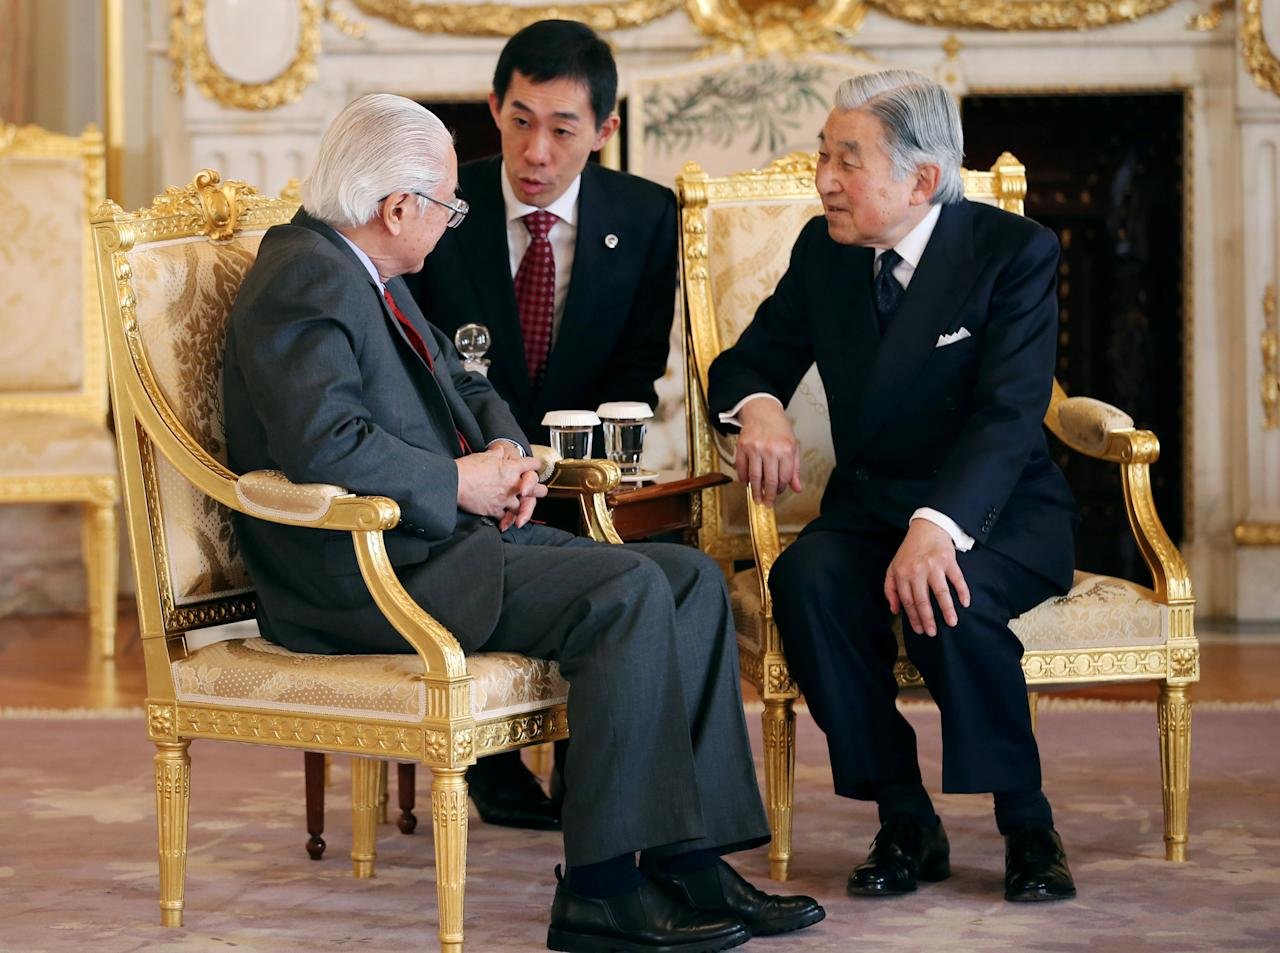 Singapore's President Tony Tan Keng Yam talks with Japanese Emperor Akihito (R) during their farewell meeting at the Akasaka State Guest House in Tokyo, Japan December 2, 2016. REUTERS/Koji Sasahara/Pool